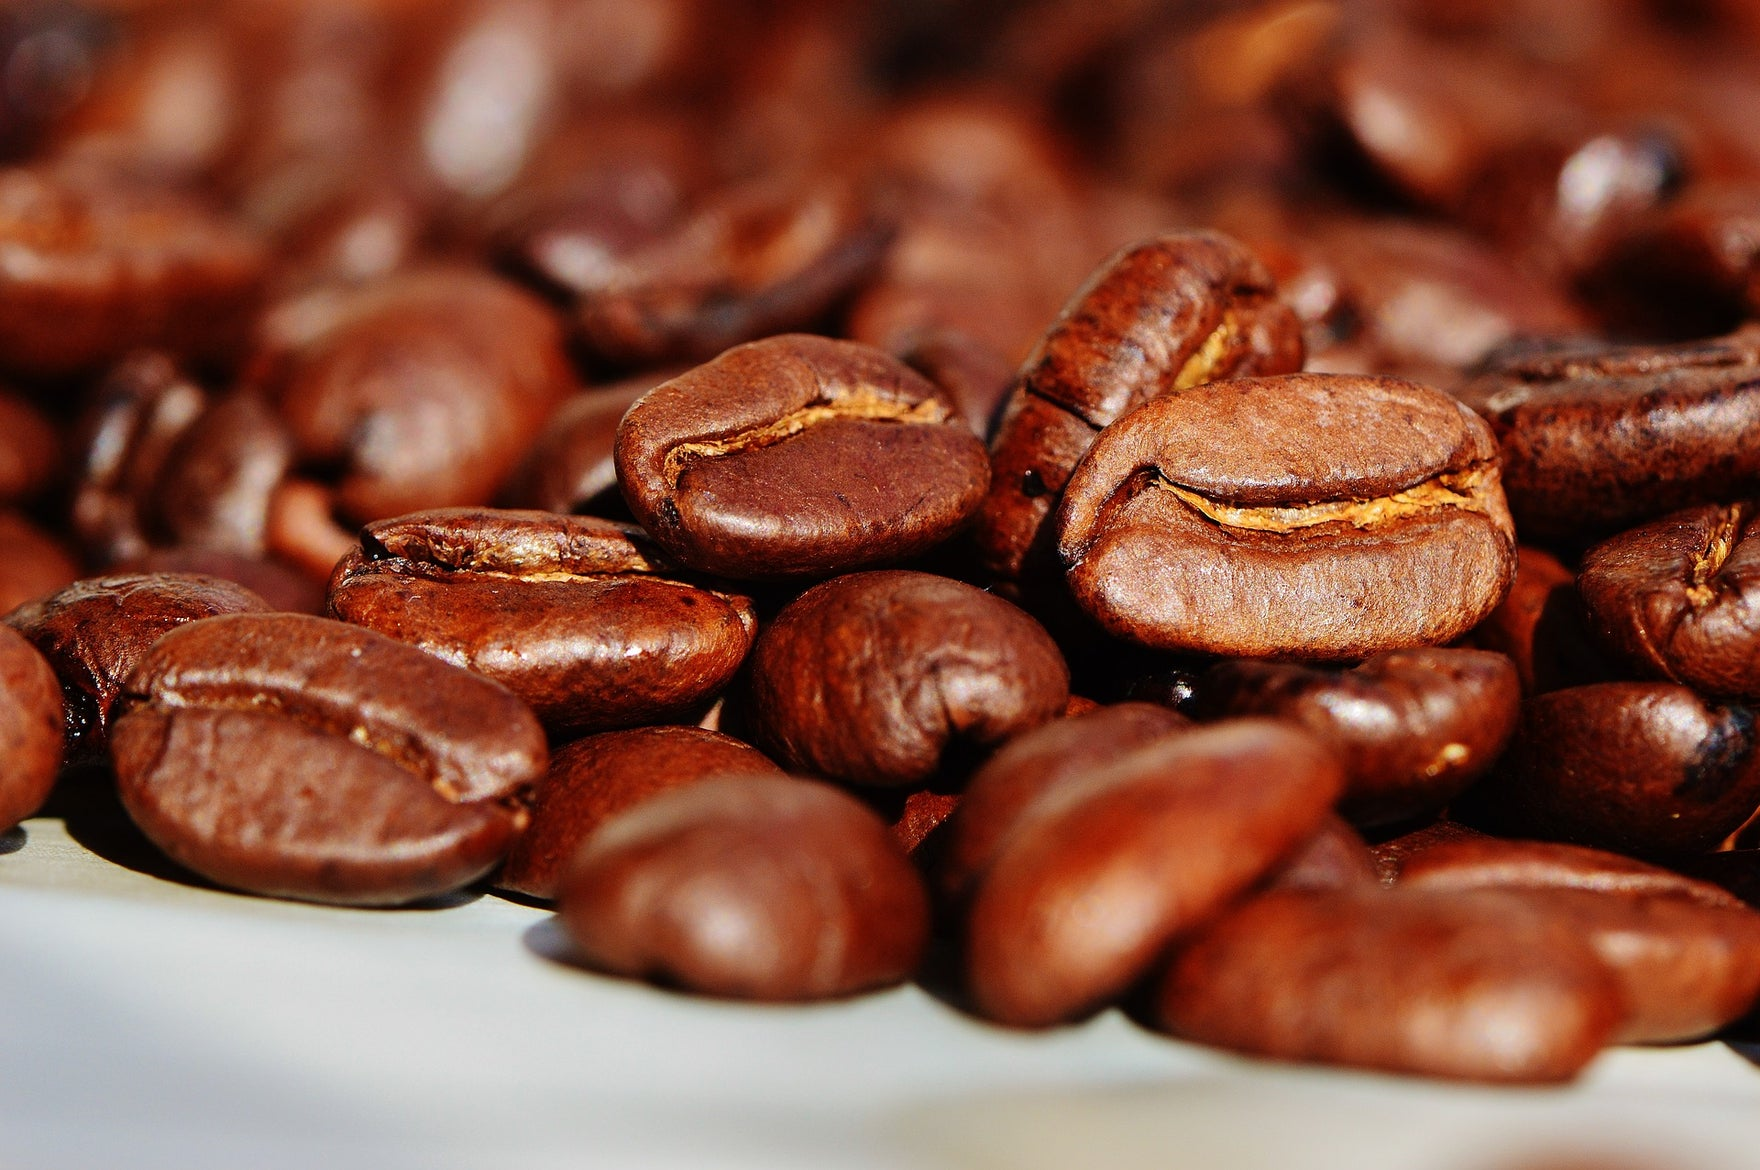 Lean Coffee: Ways Caffeine Promotes Fat Loss